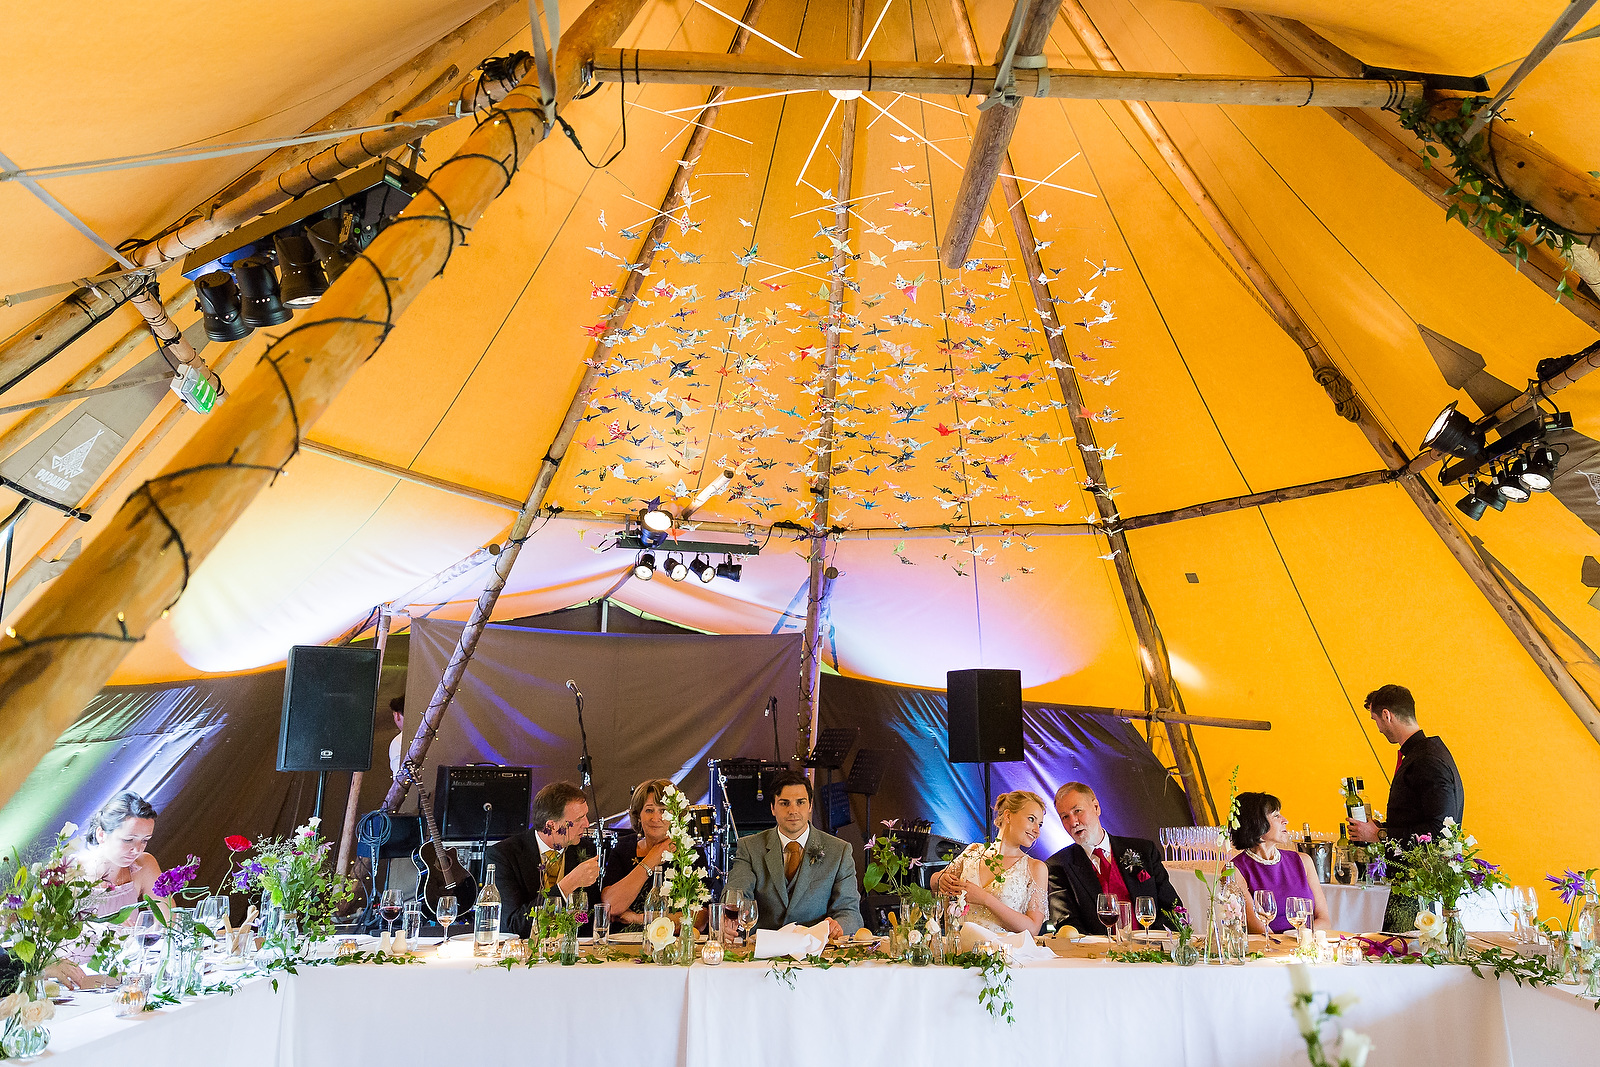 Harriet & William's PapaKåta Teepee Wedding at Gilmerton House captured by First Light Photography- Top Table Styling